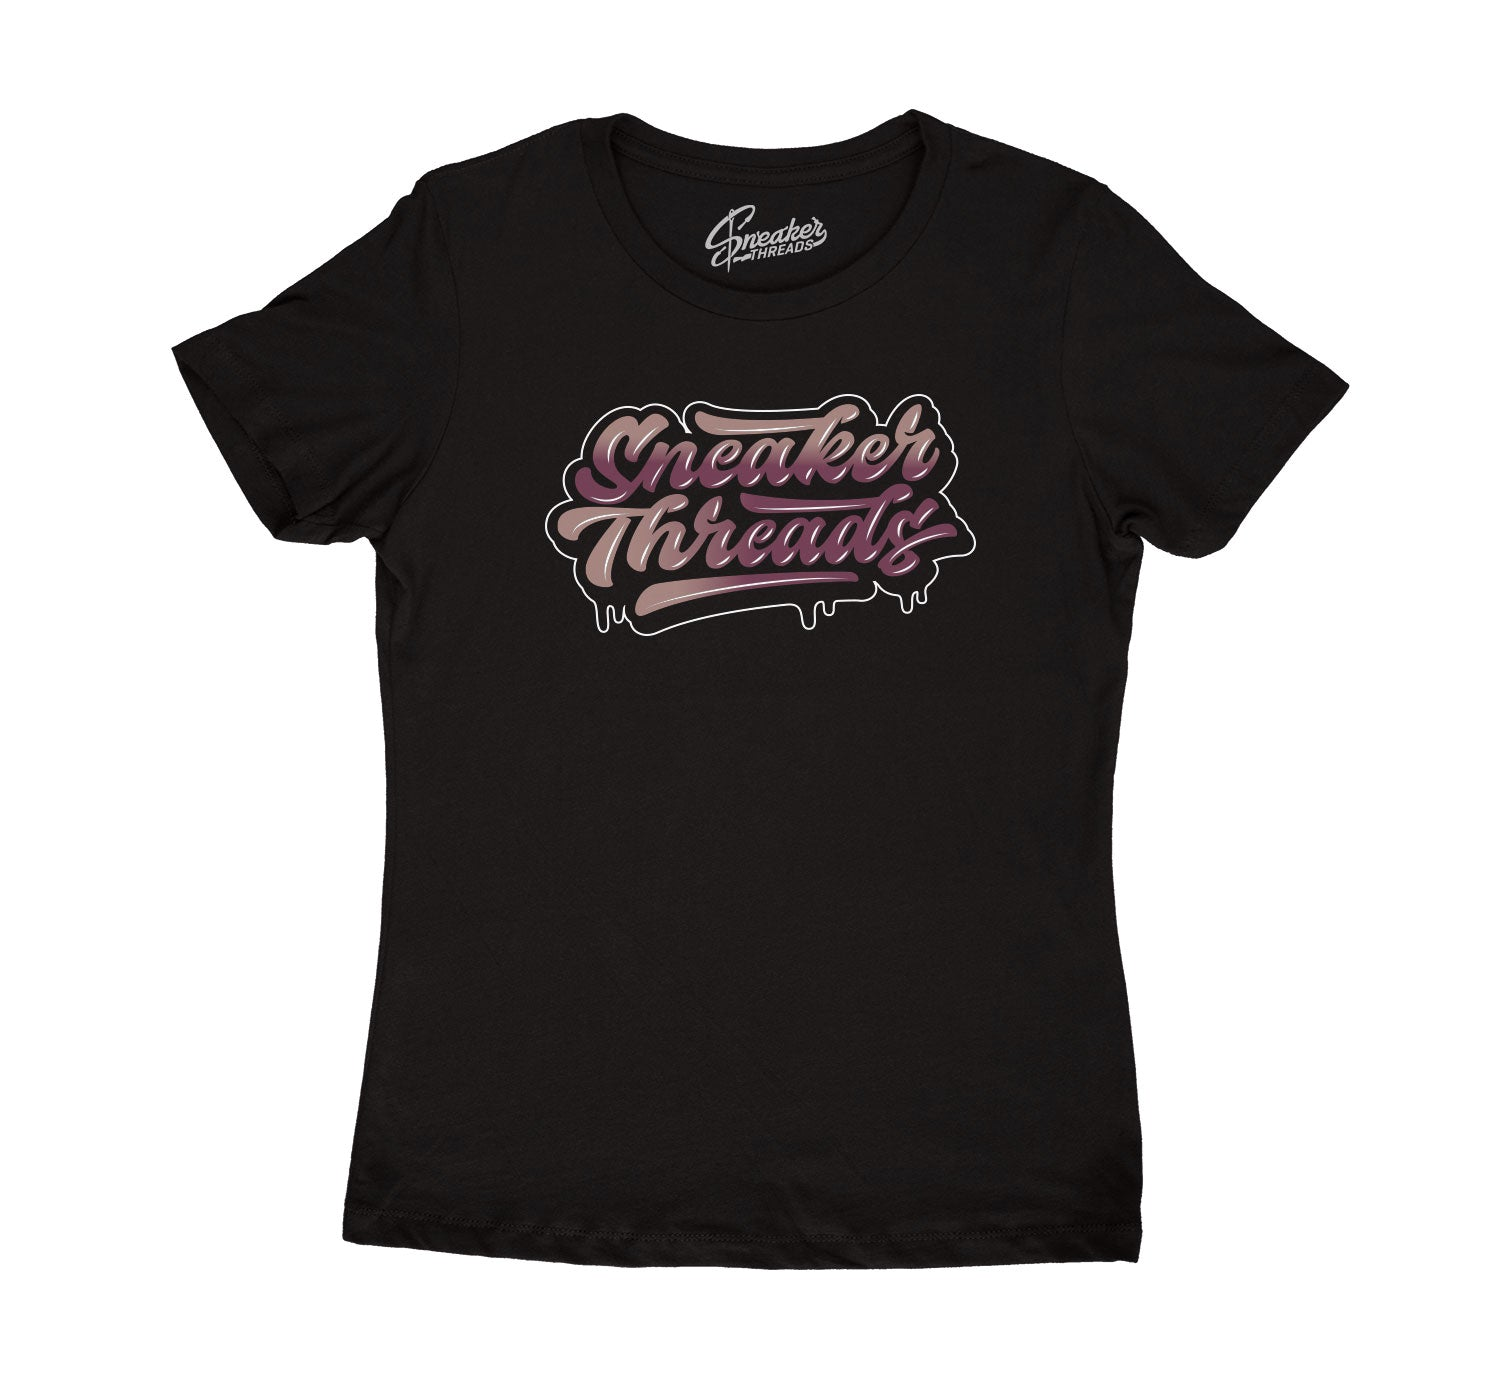 Jordan 1 Fearless womens shoe match womens t shirts